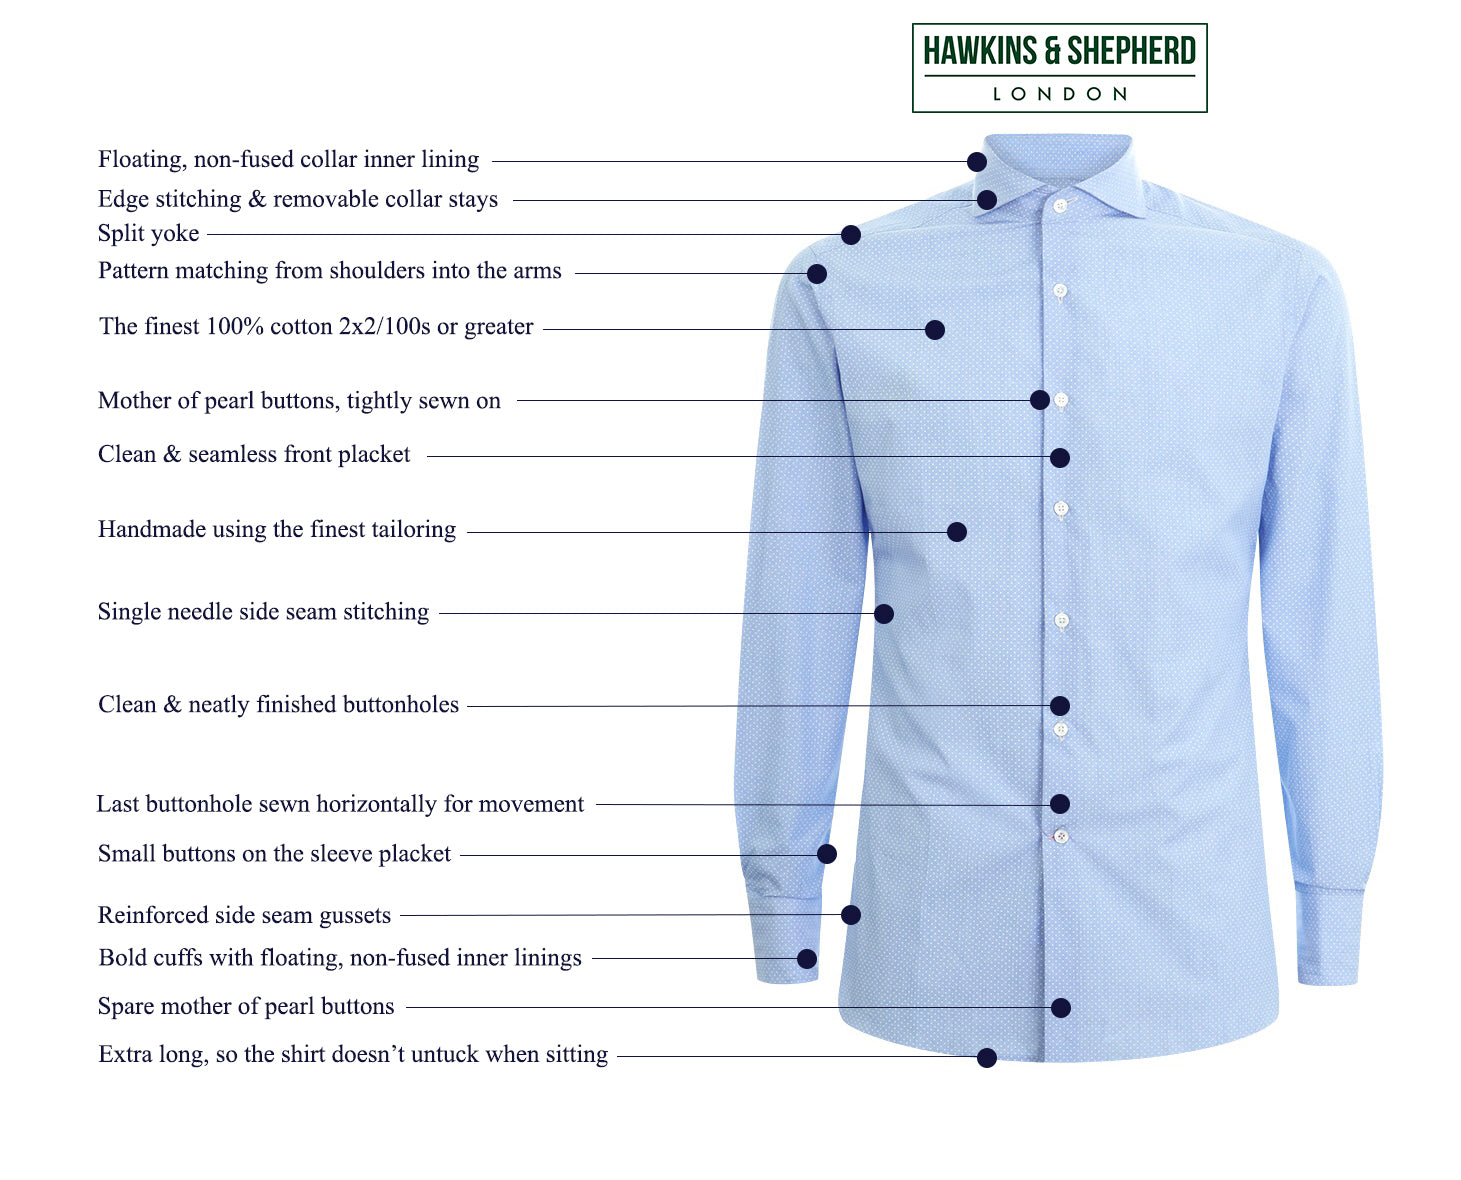 What Makes The Perfect Shirt by Hawkins & Shepherd